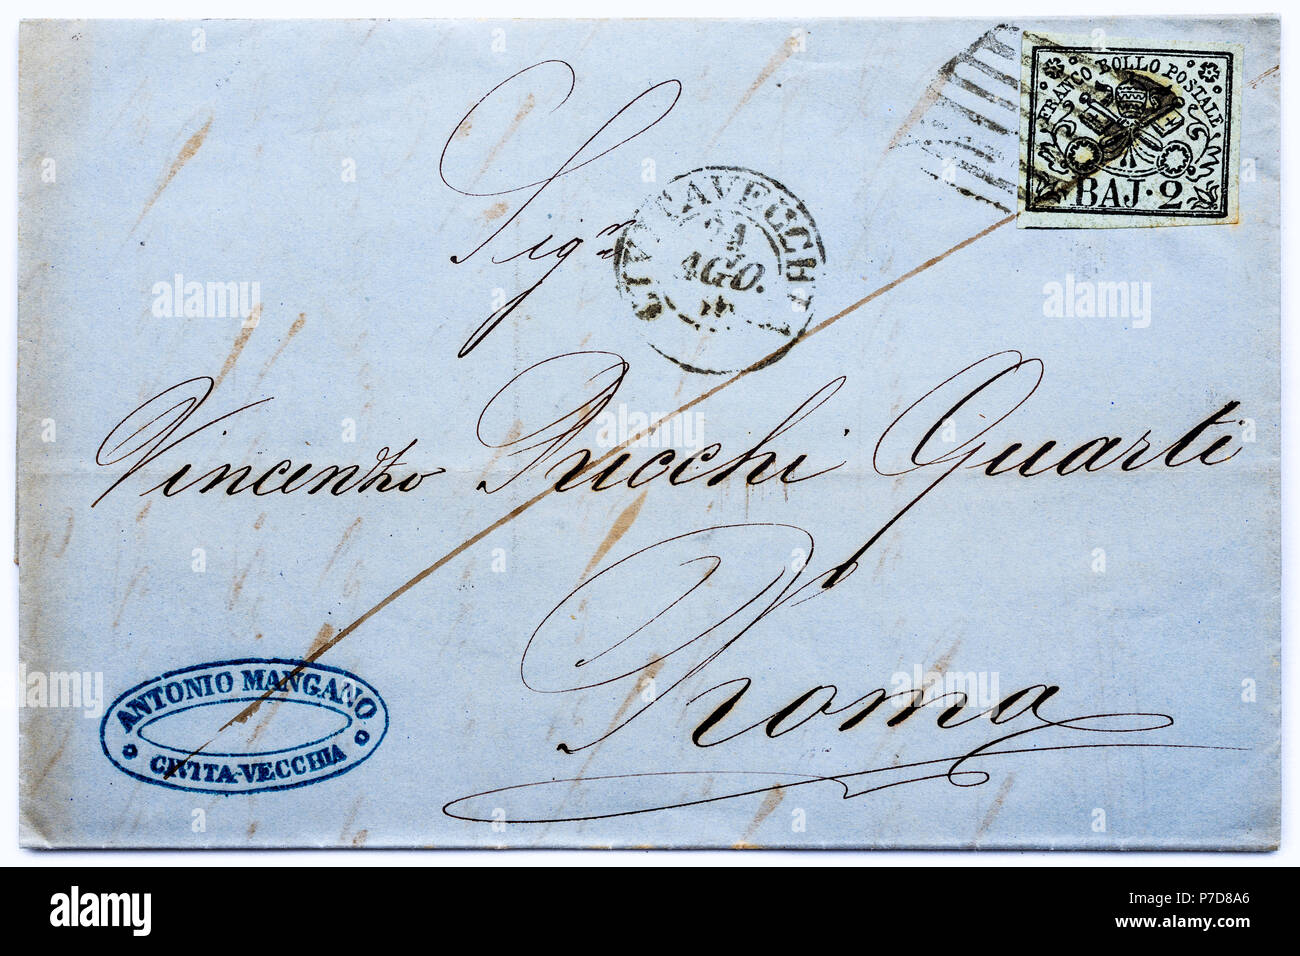 1852 Papal States (Italy) postage stamp on letter. - Stock Image